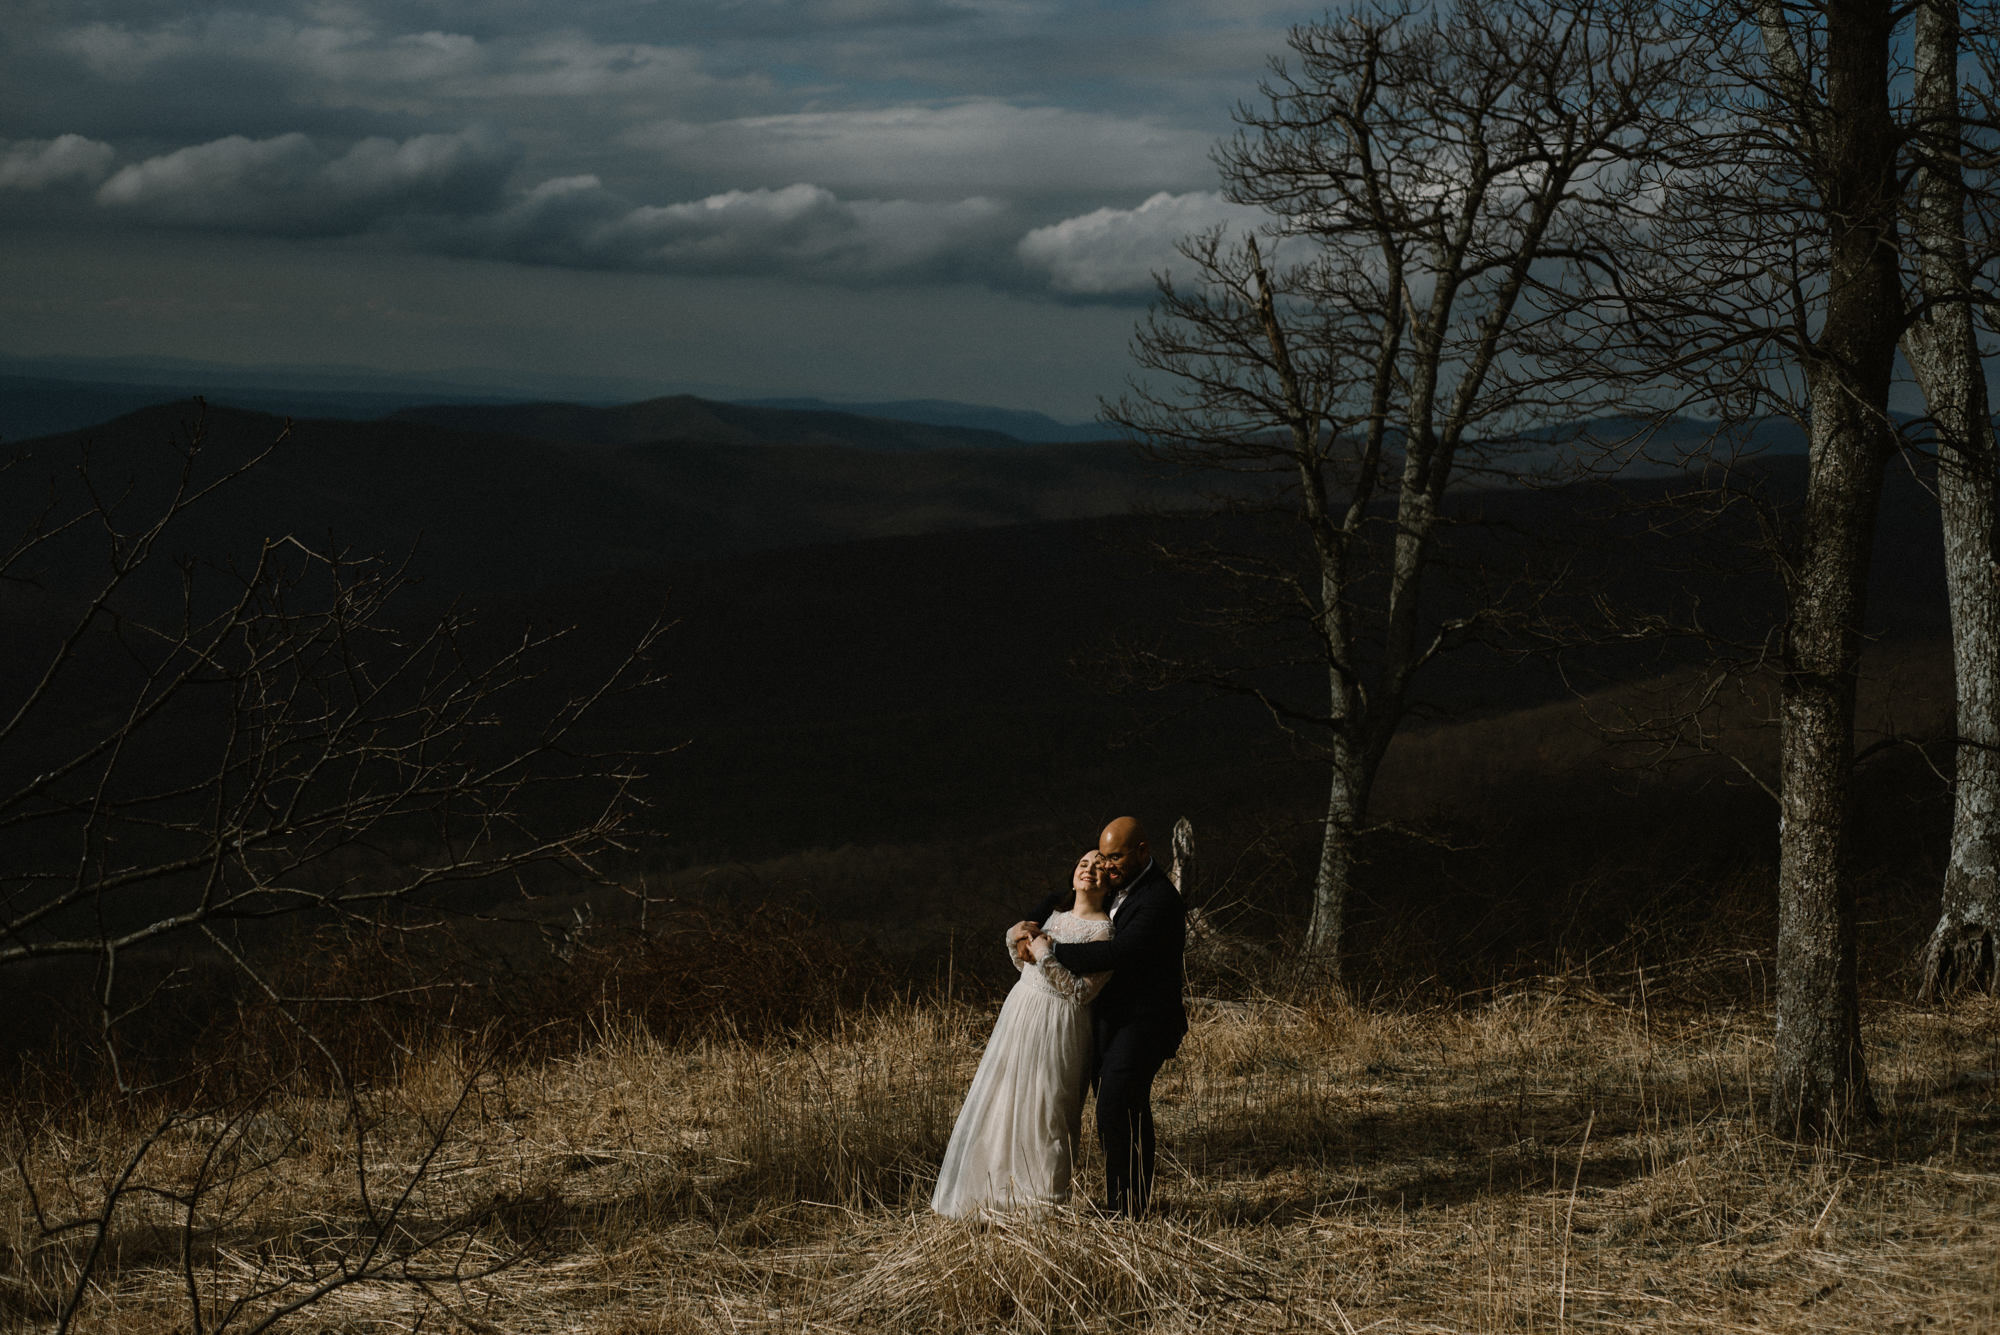 Emma and Jeddah - Intimate Luray Wedding - Shenandoah National Park Wedding - Adventure Elopement in Virginia - Shenandoah National Park Elopement_42.jpg